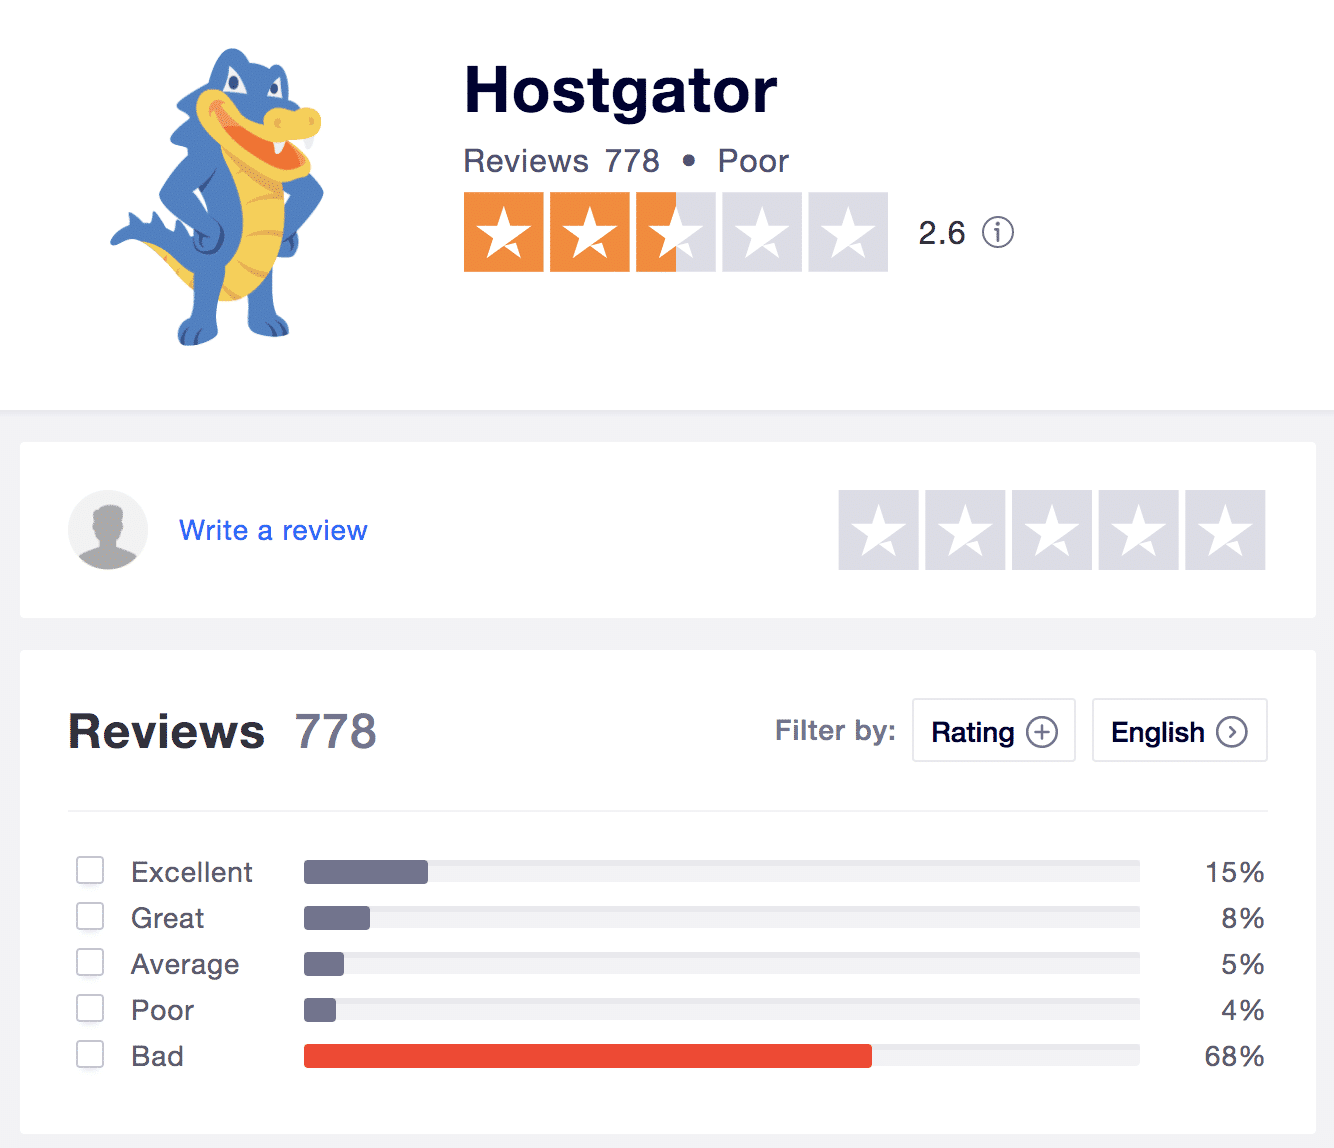 HostGator's low score on Trustpilot.